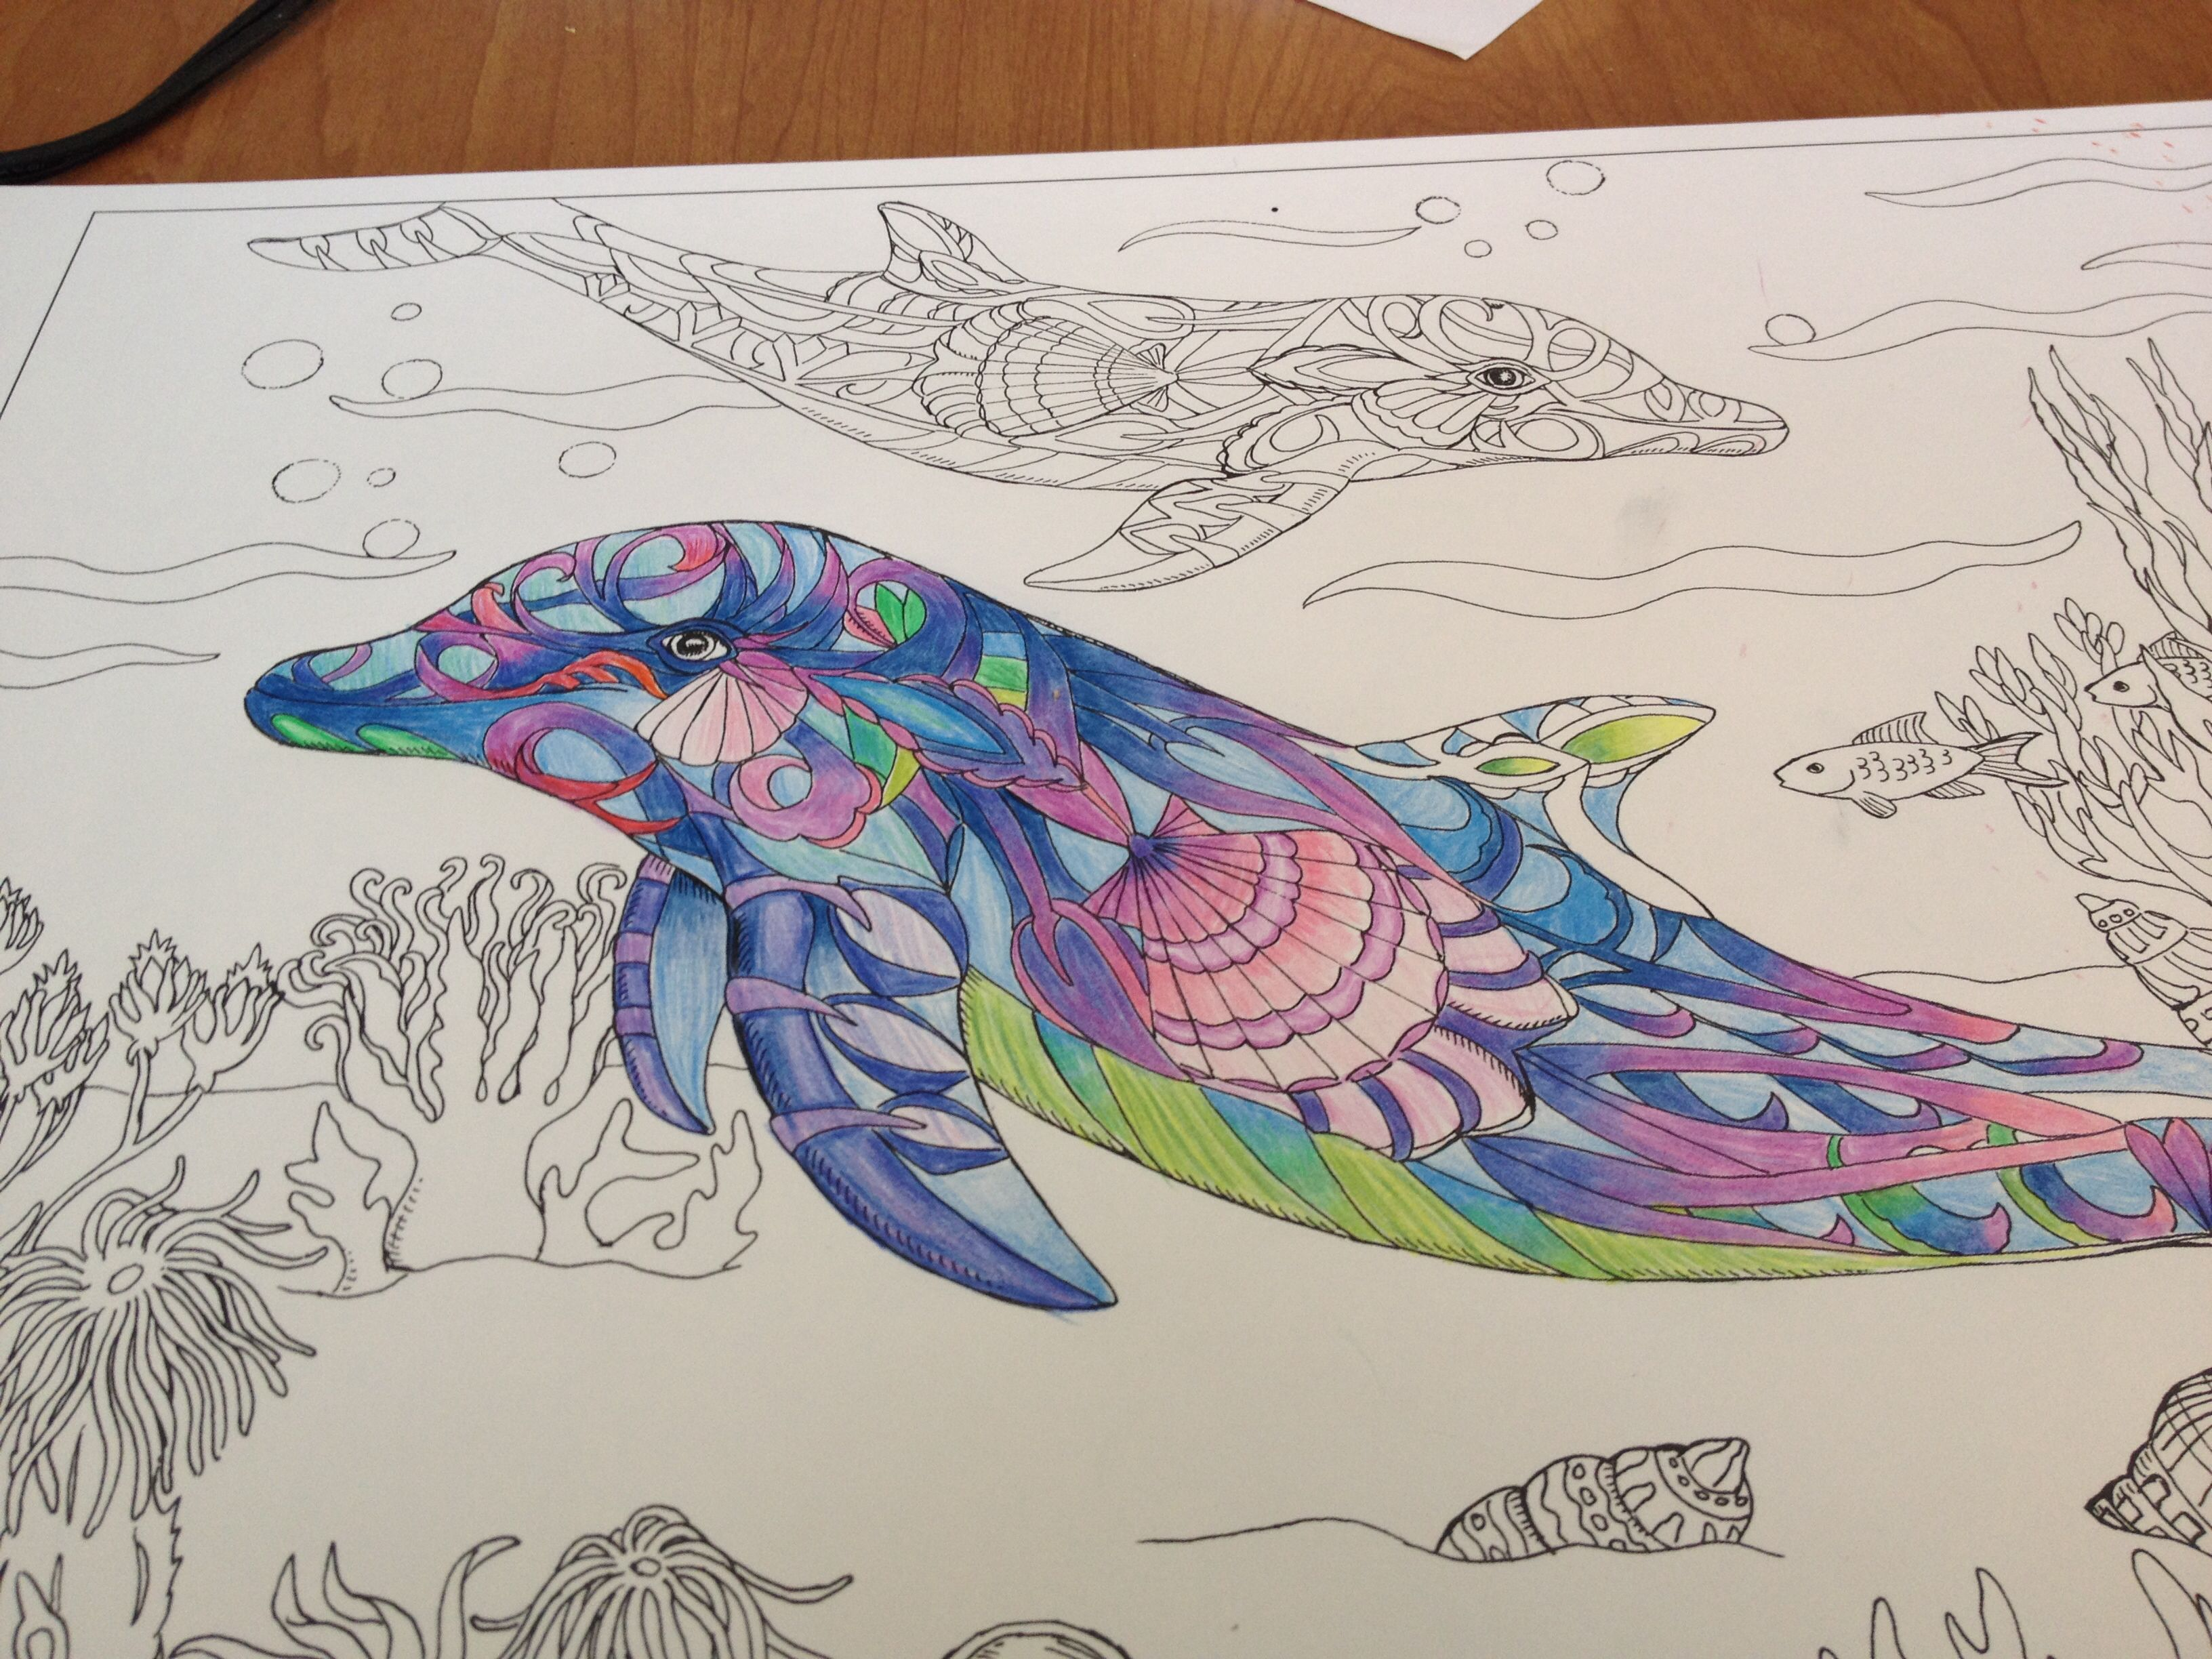 I LOVE COLORING!